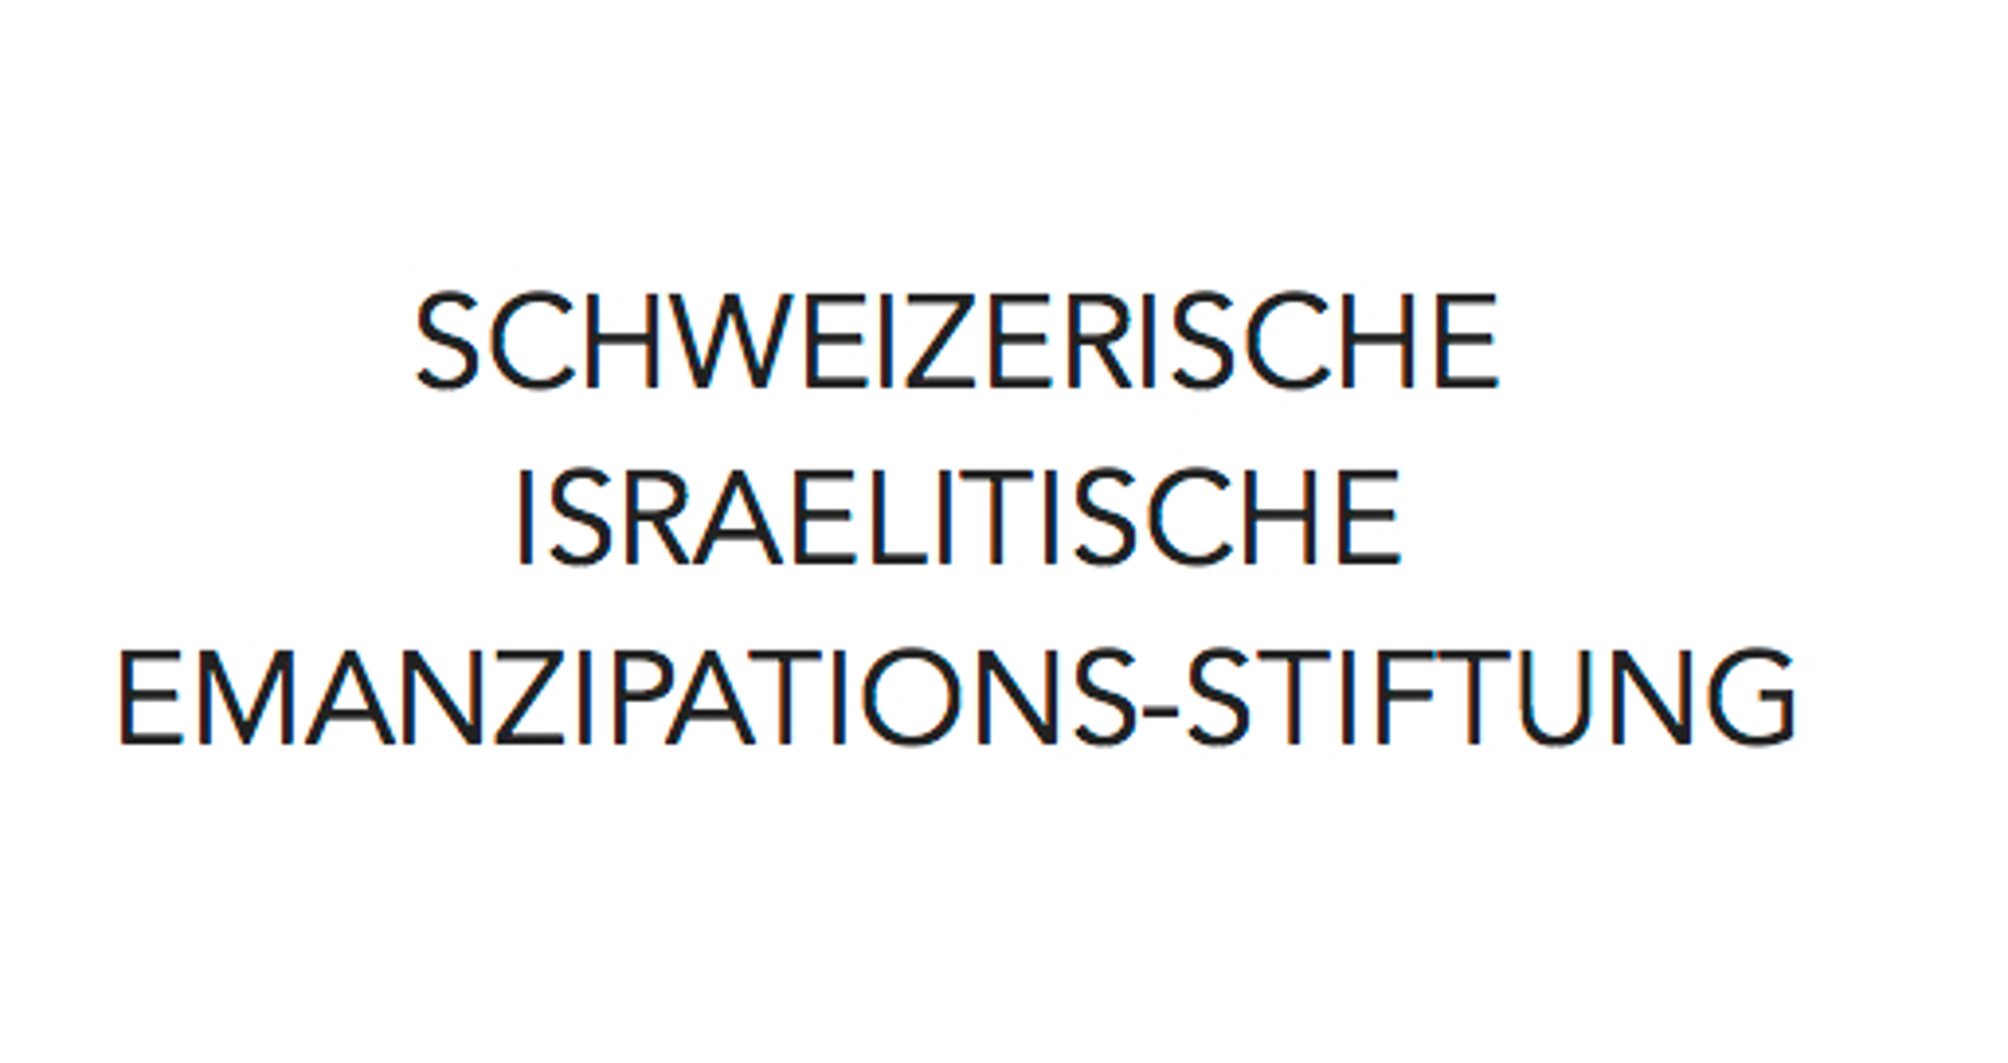 Emanzipationstiftung for website.jpg